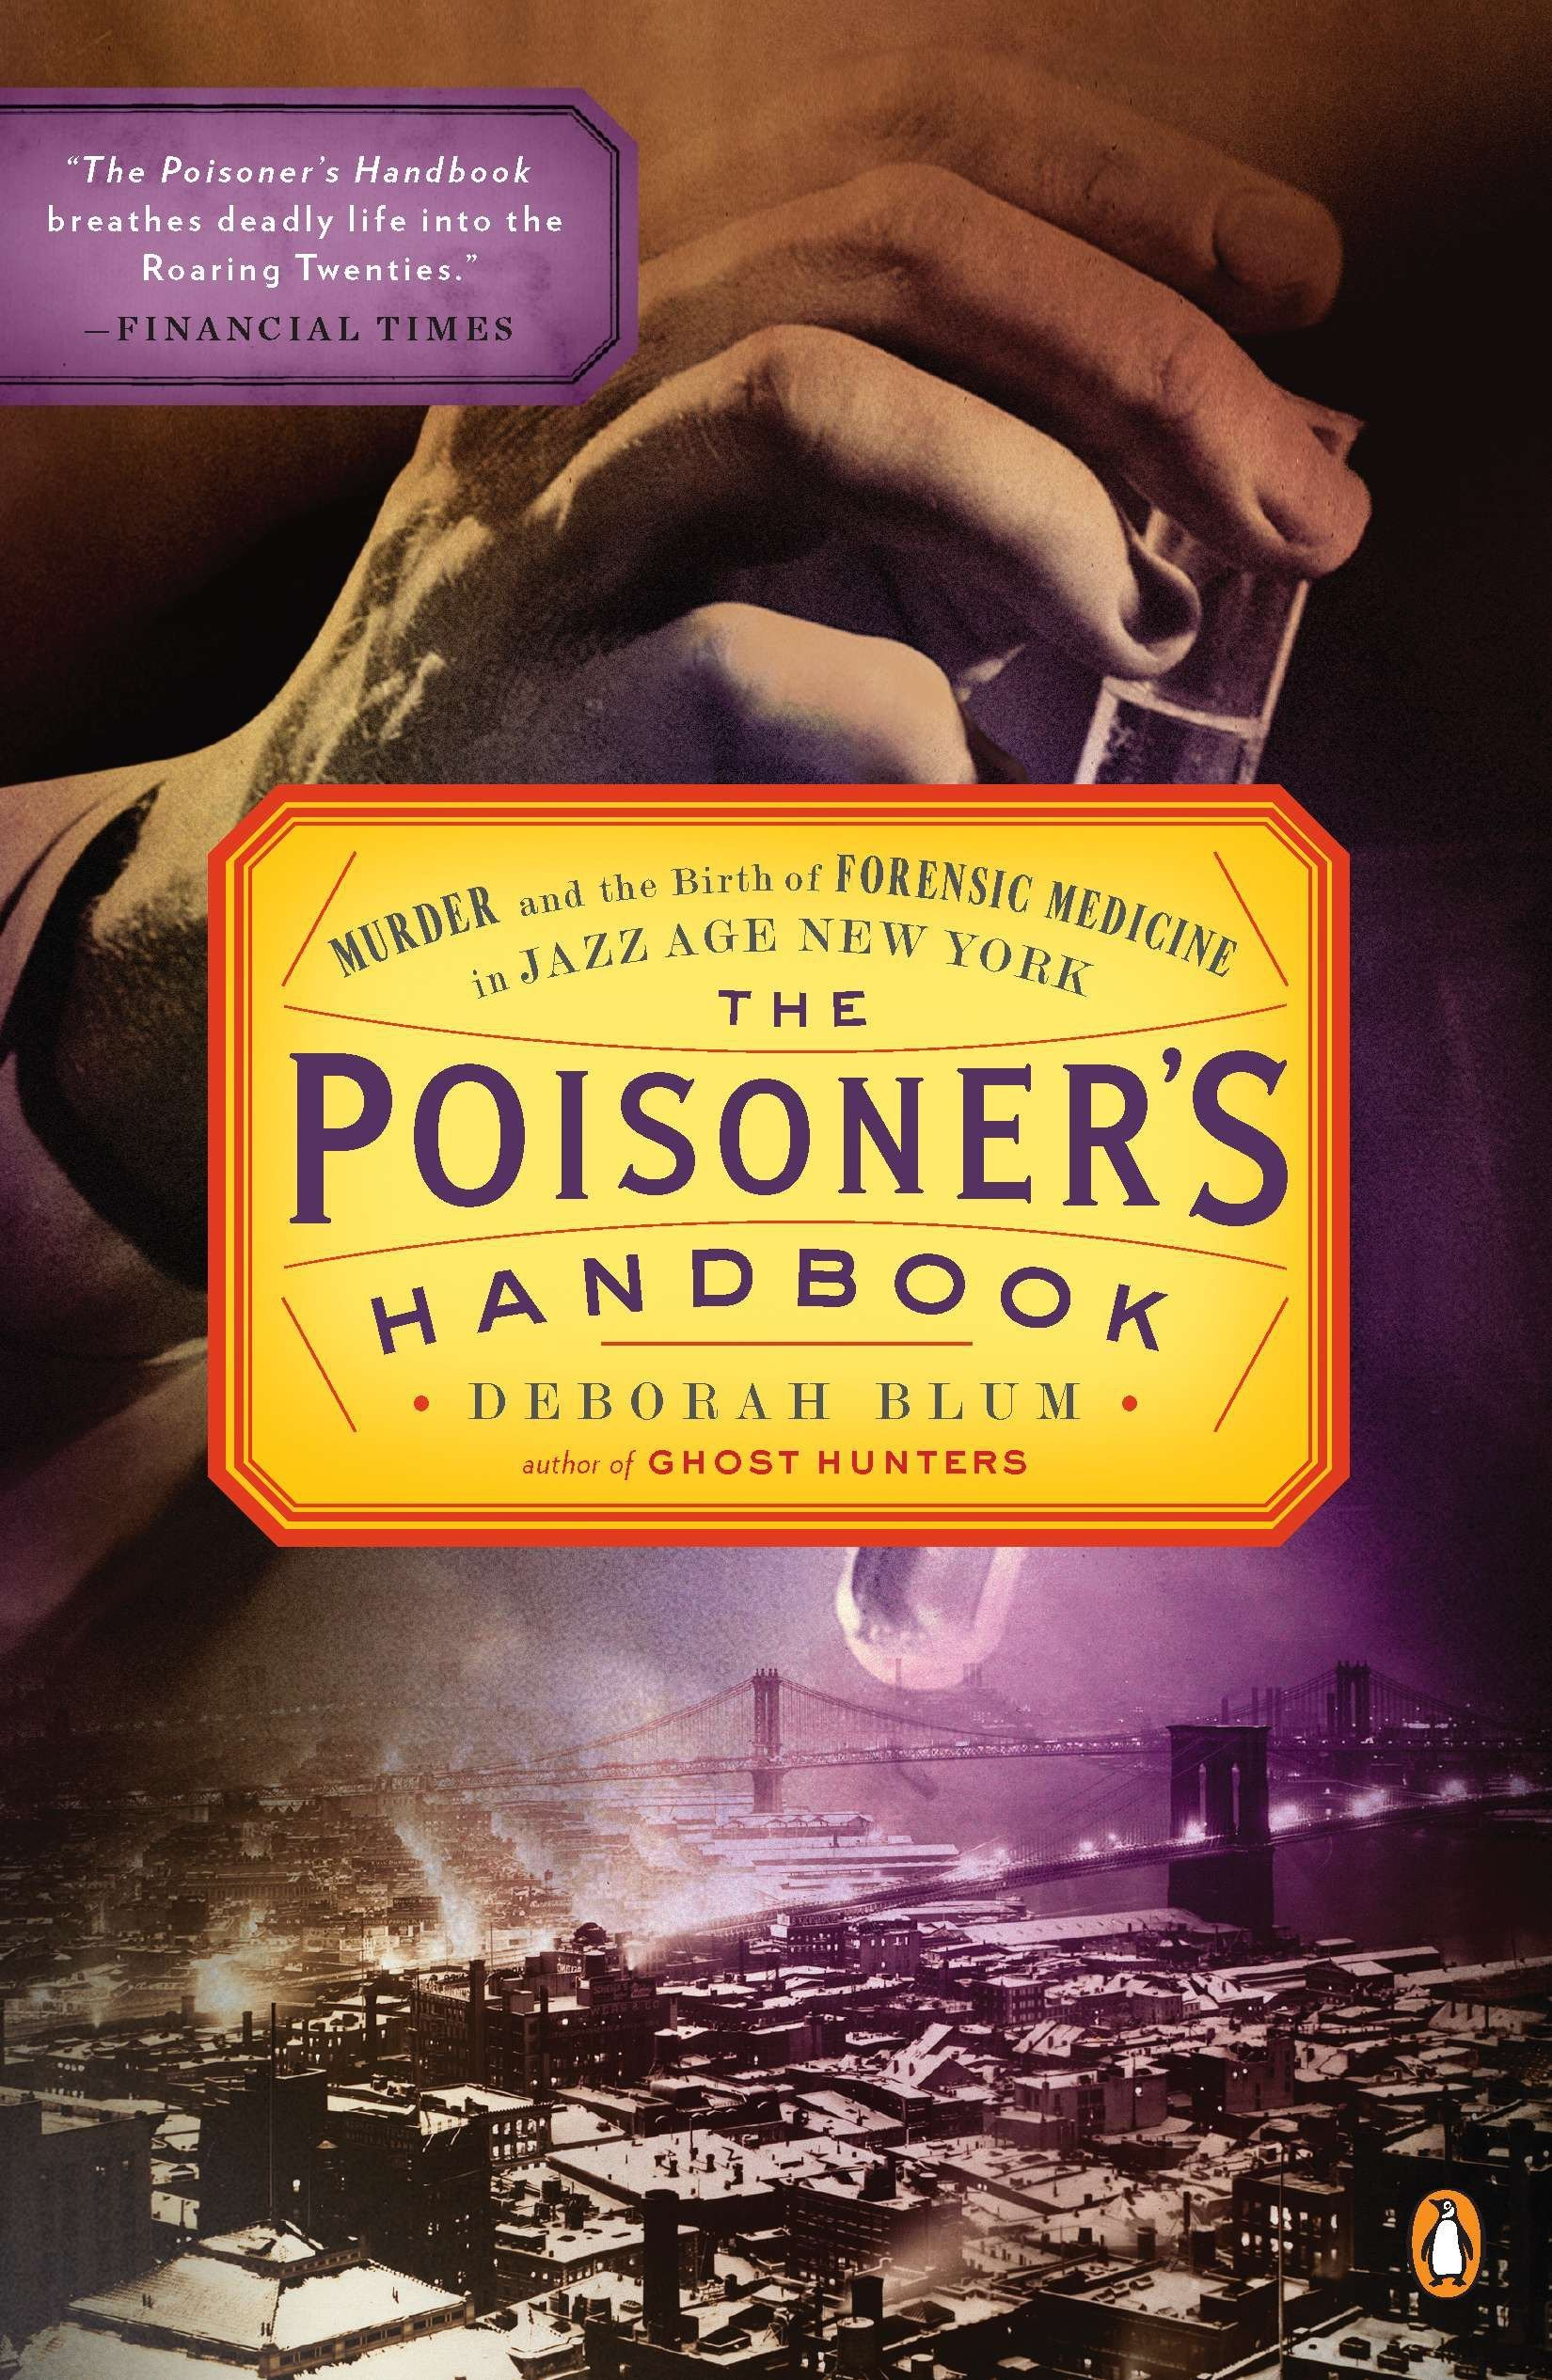 The Poisoner's Handbook: Murder and the Birth of Forensic Medicine in Jazz Age New York by Penguin Books